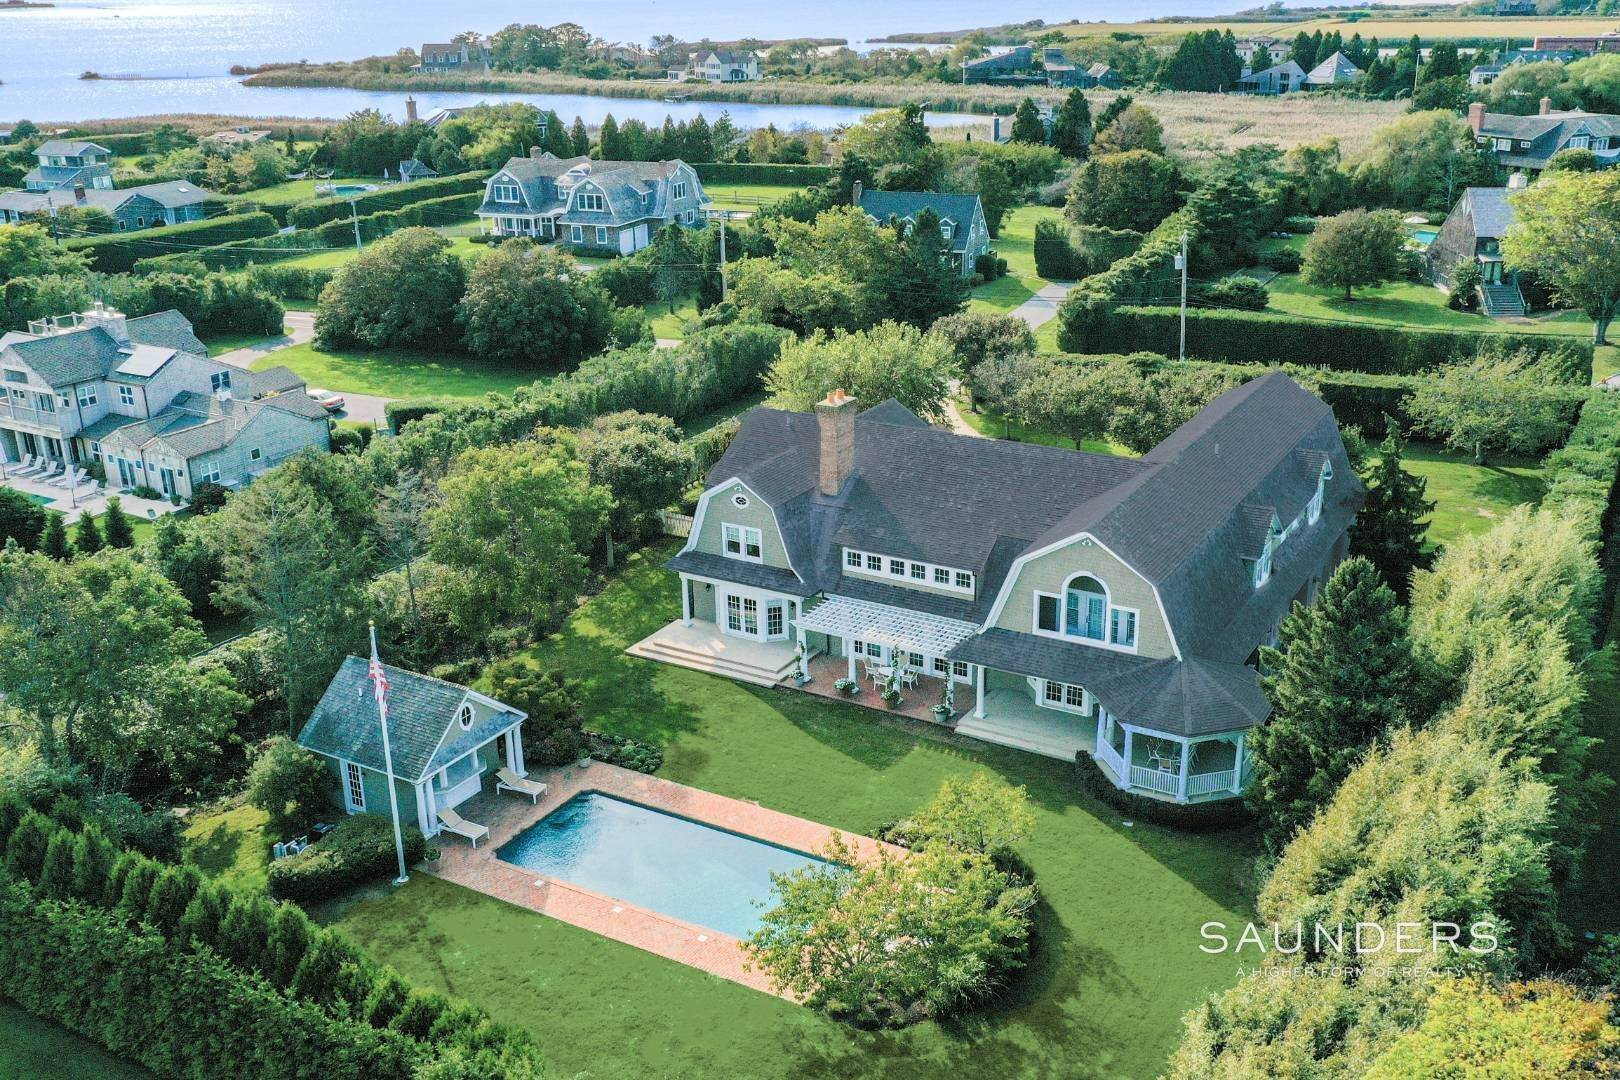 Single Family Homes for Sale at Fabulous Bridgehampton Estate Near Ocean Beaches 403 Jobs Lane, Bridgehampton, Southampton Town, NY 11976